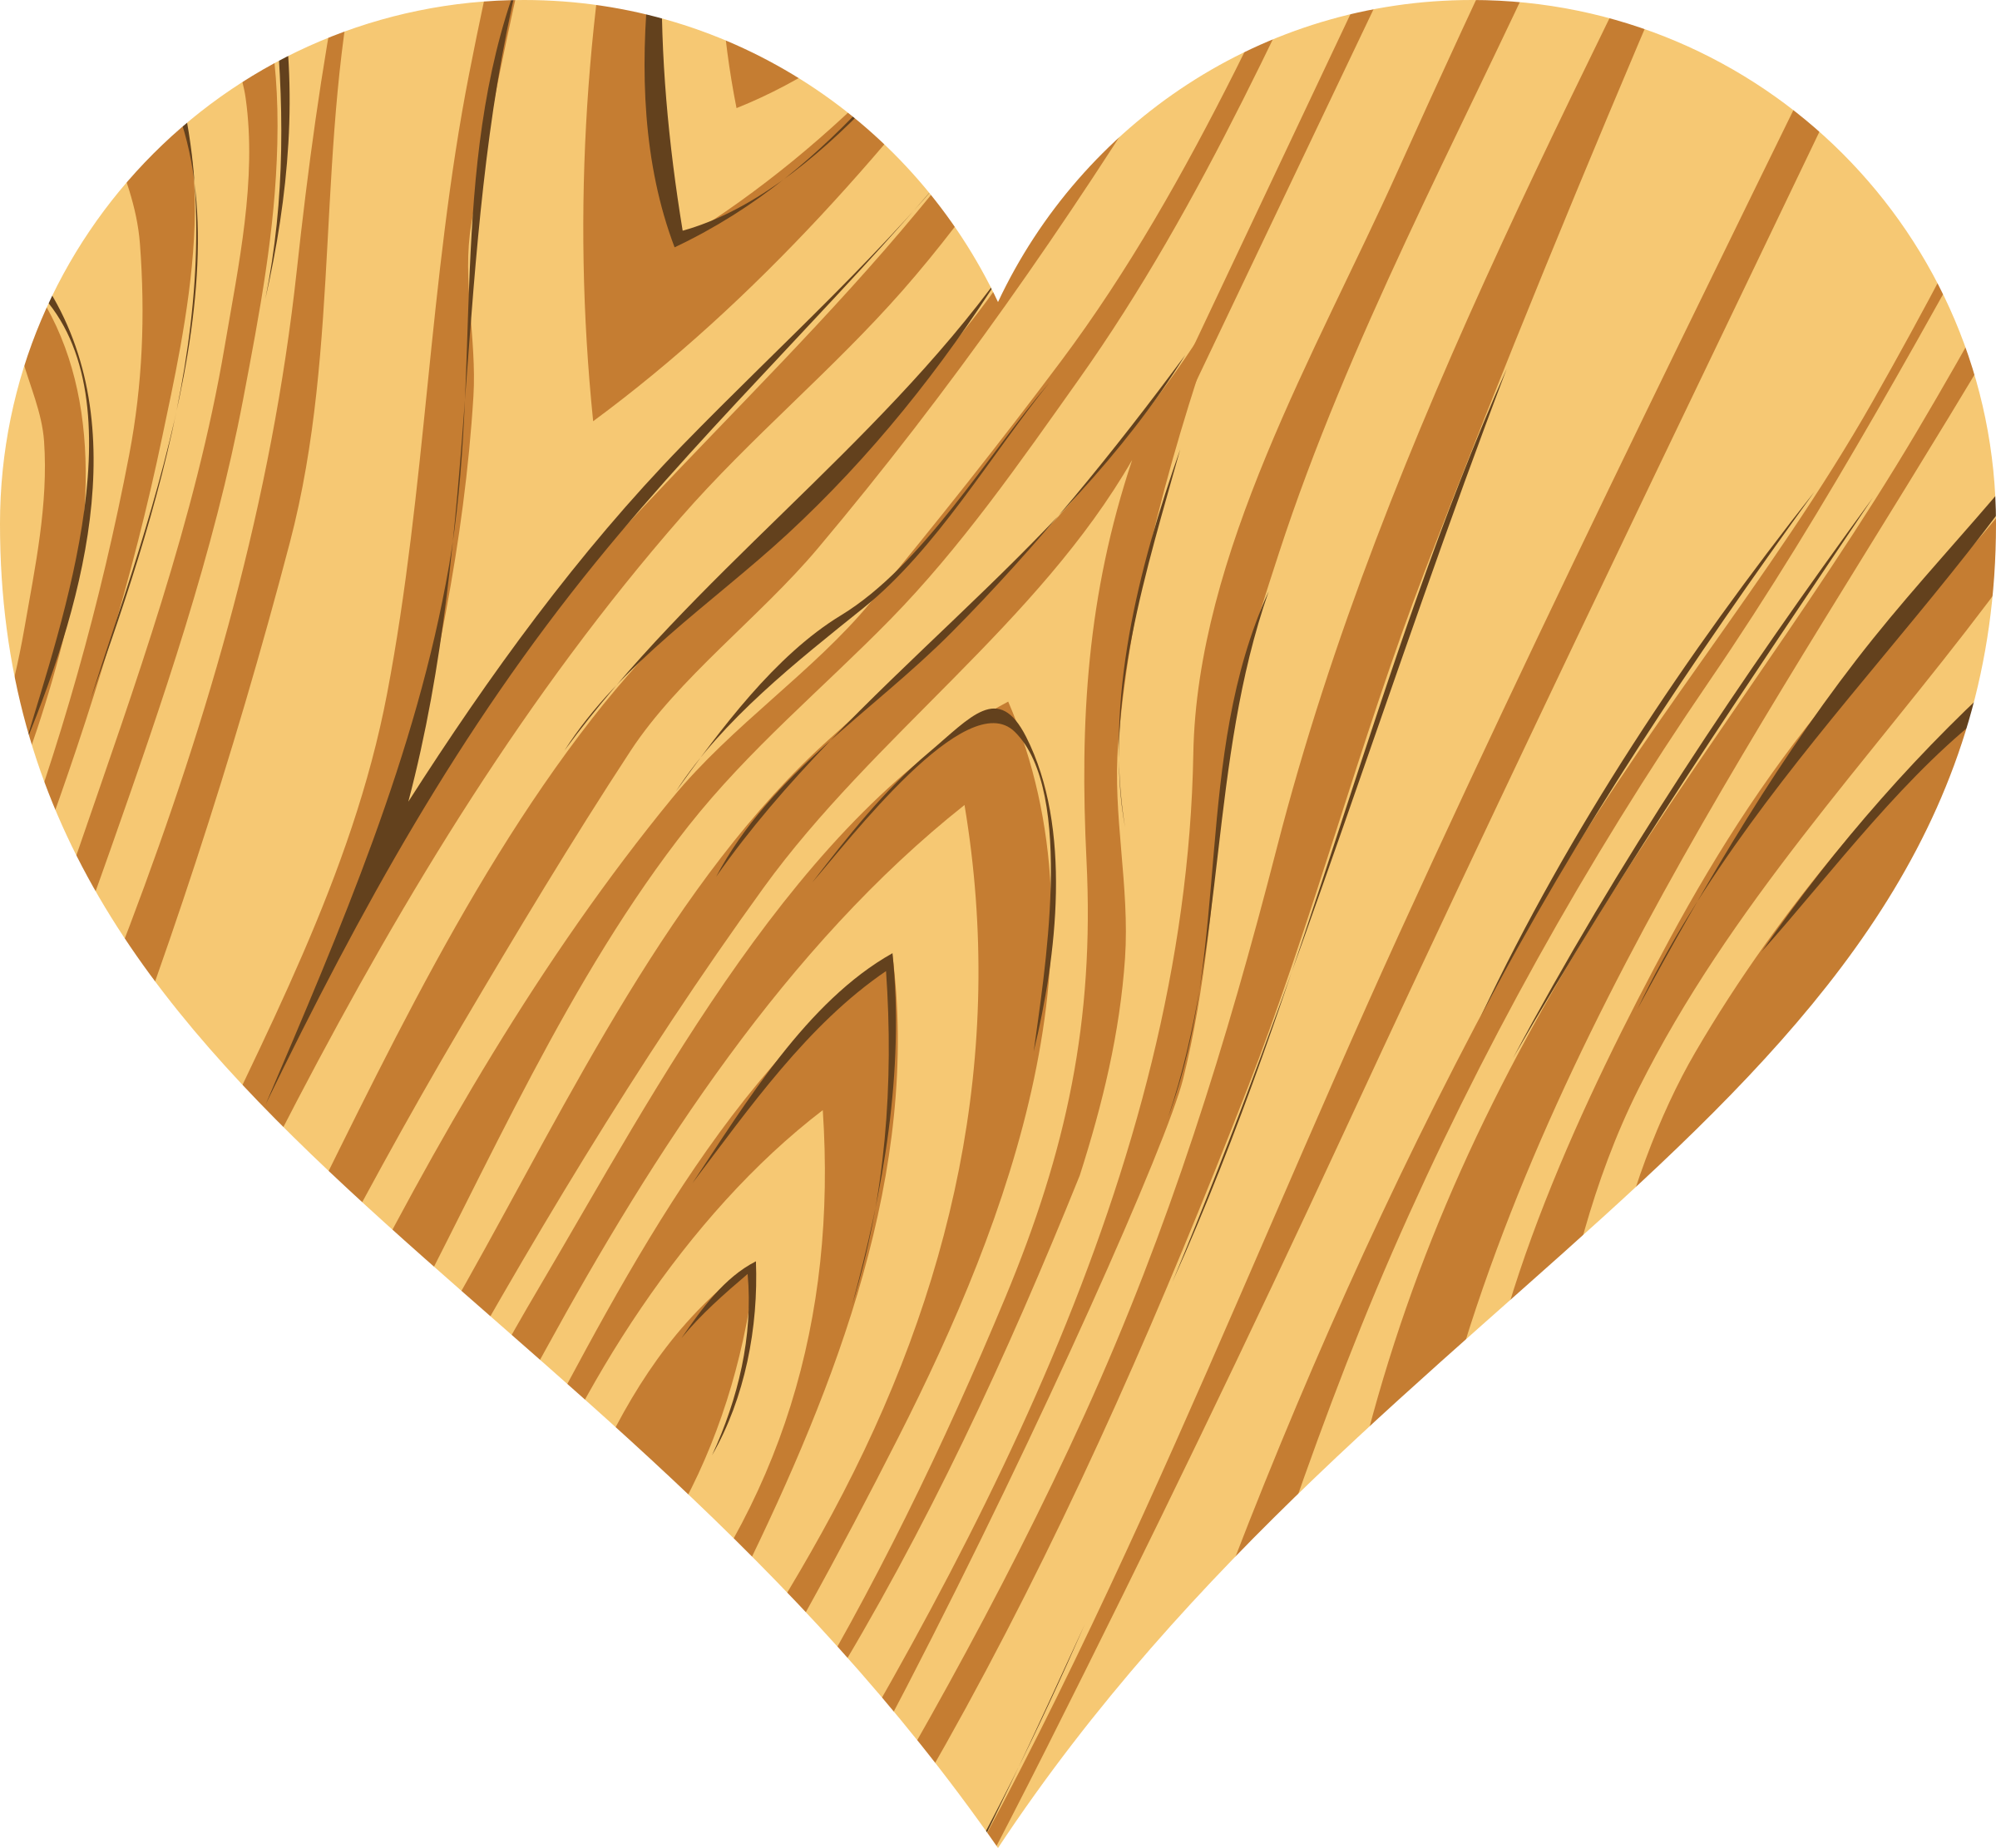 Wooden heart 2 by Firkin